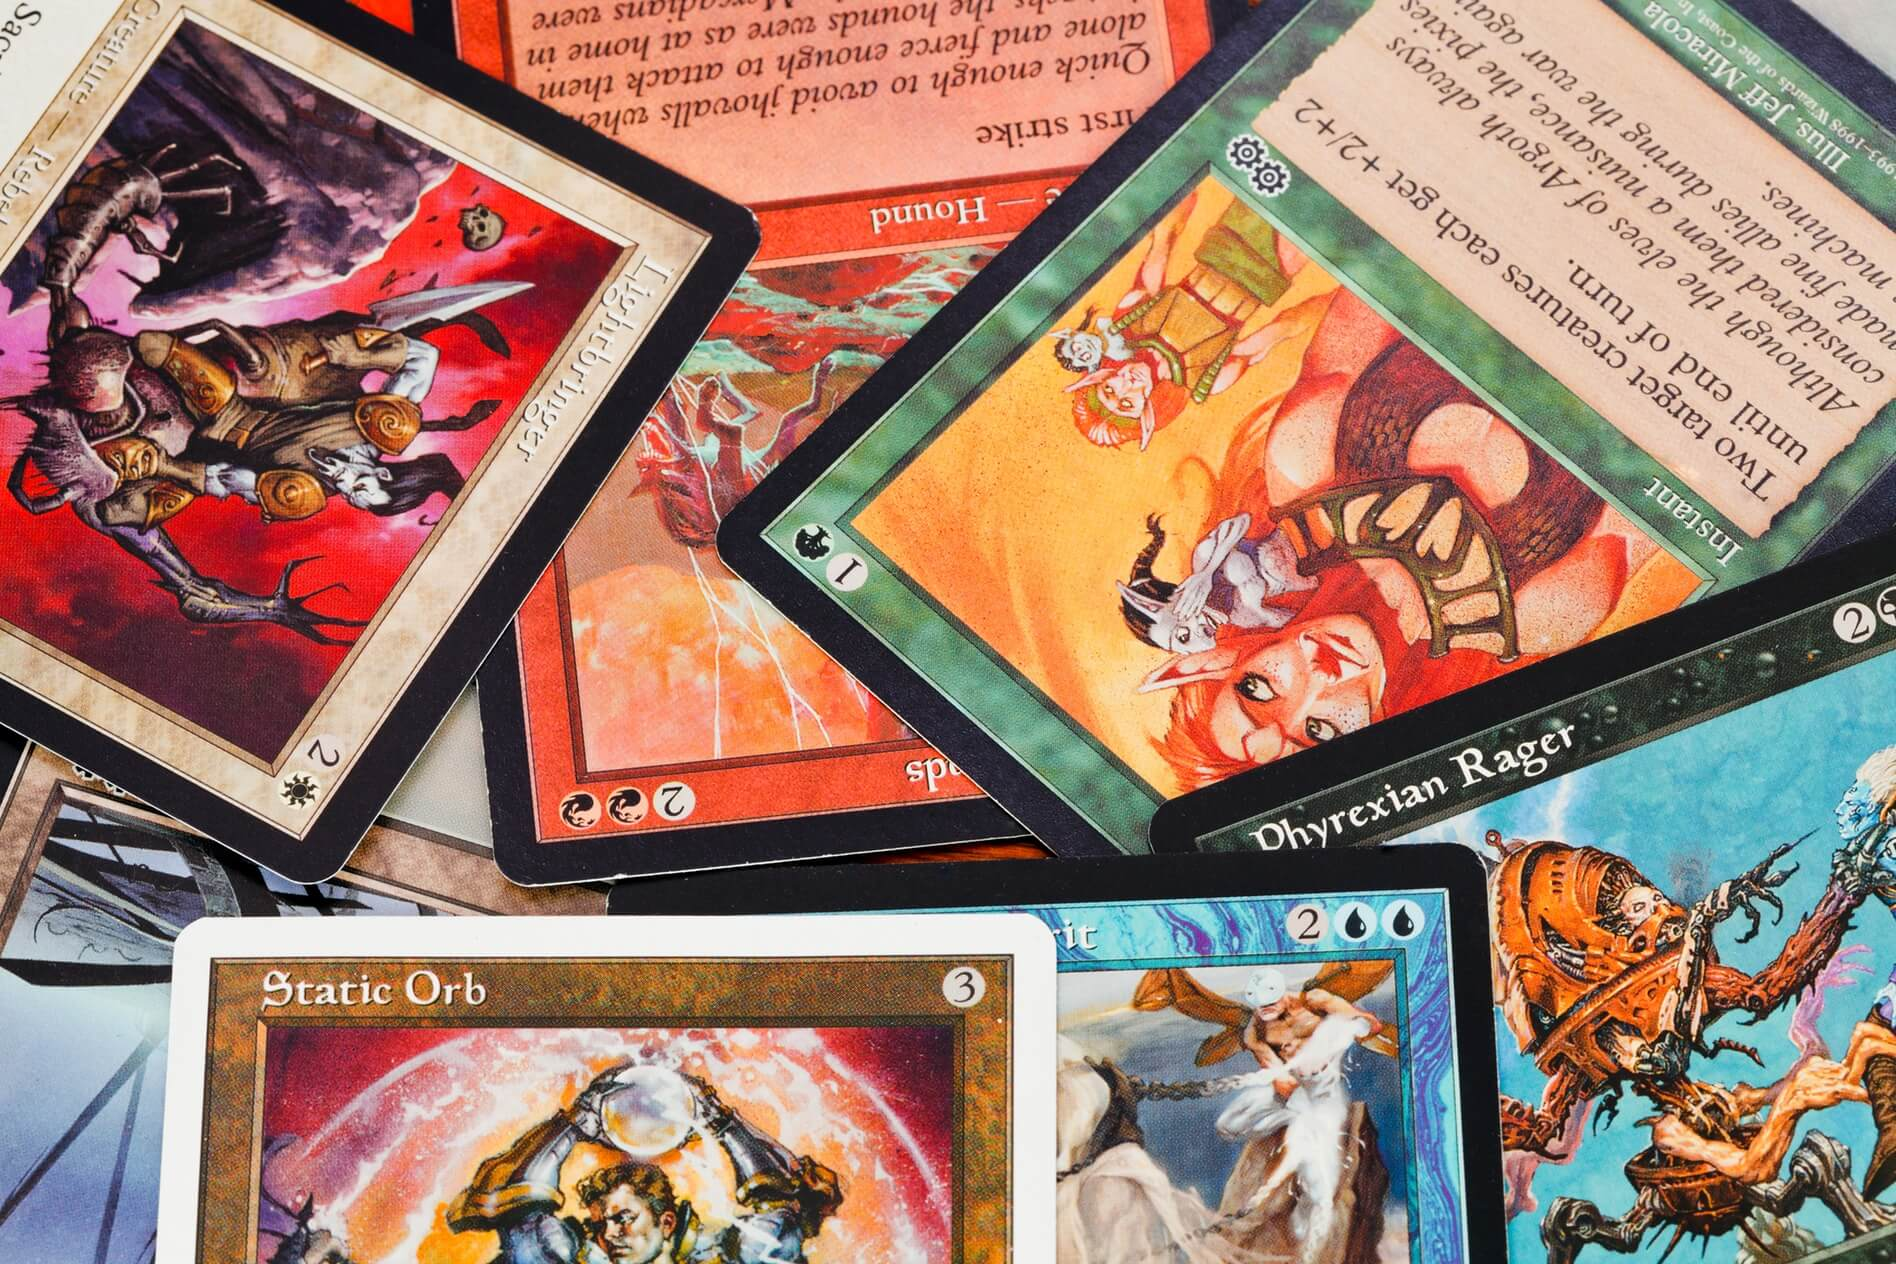 Forget Bitcoin: These guys invest in Magic cards